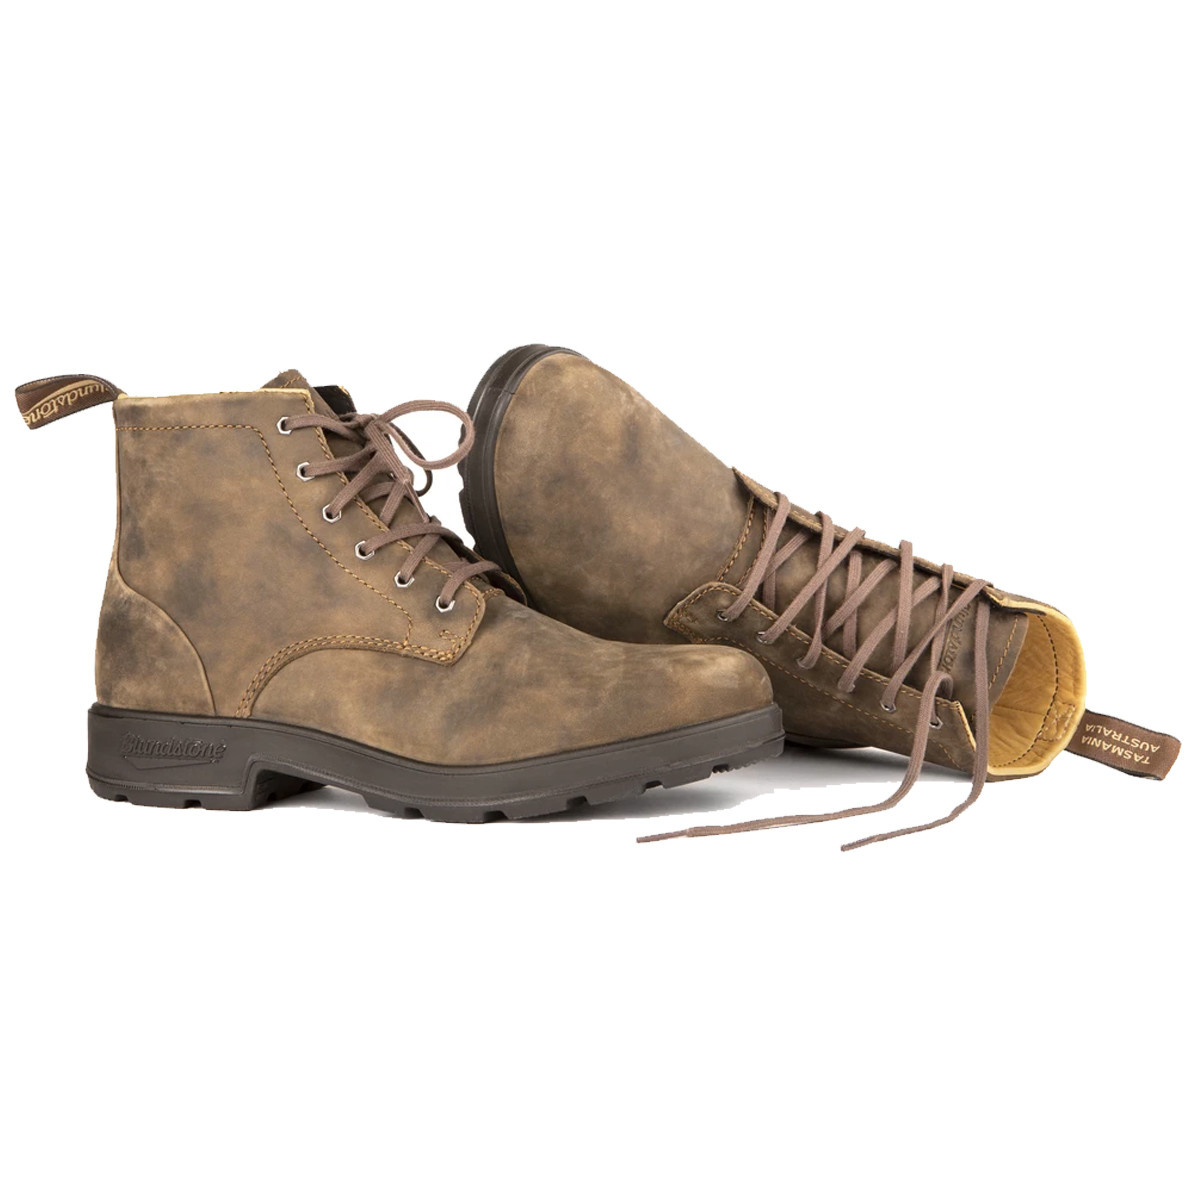 Blundstone Blundstone 1937 Lace Up Rustic Brown